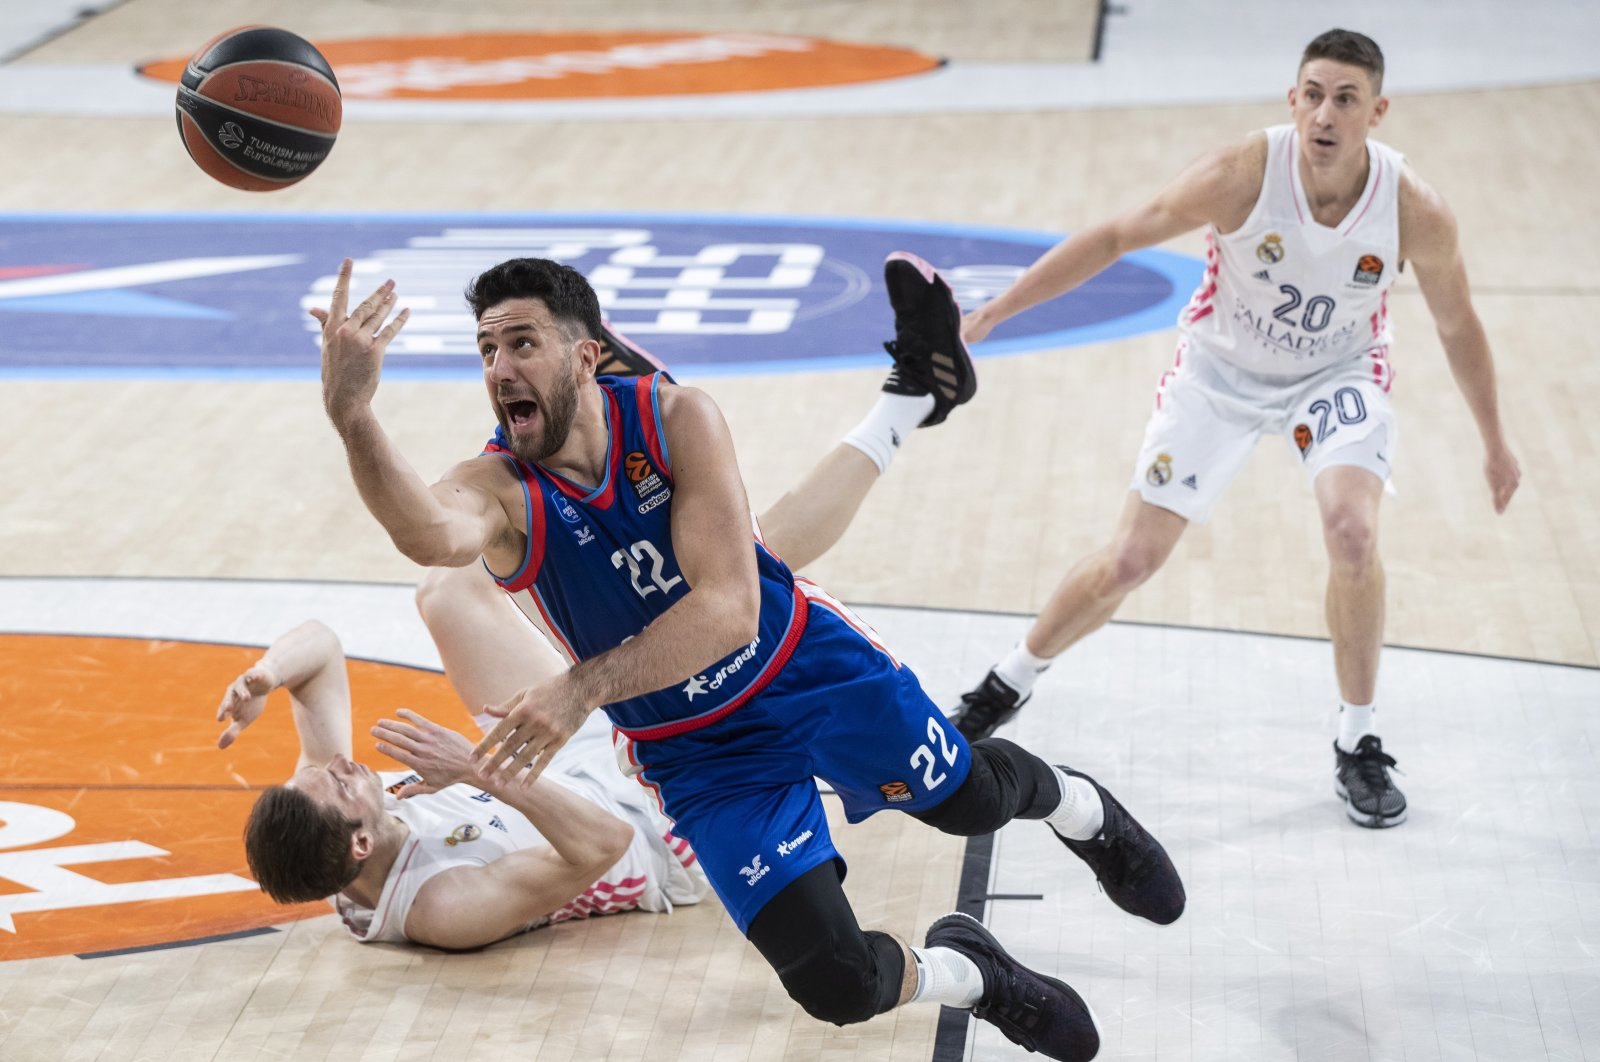 Anadolu Efes' Vasilije Micic (C) in action against Real Madrid's Jaycee Carroll (R) during a THY EuroLeague basketball match in Istanbul, Turkey, April 20, 2021. (EPA Photo)